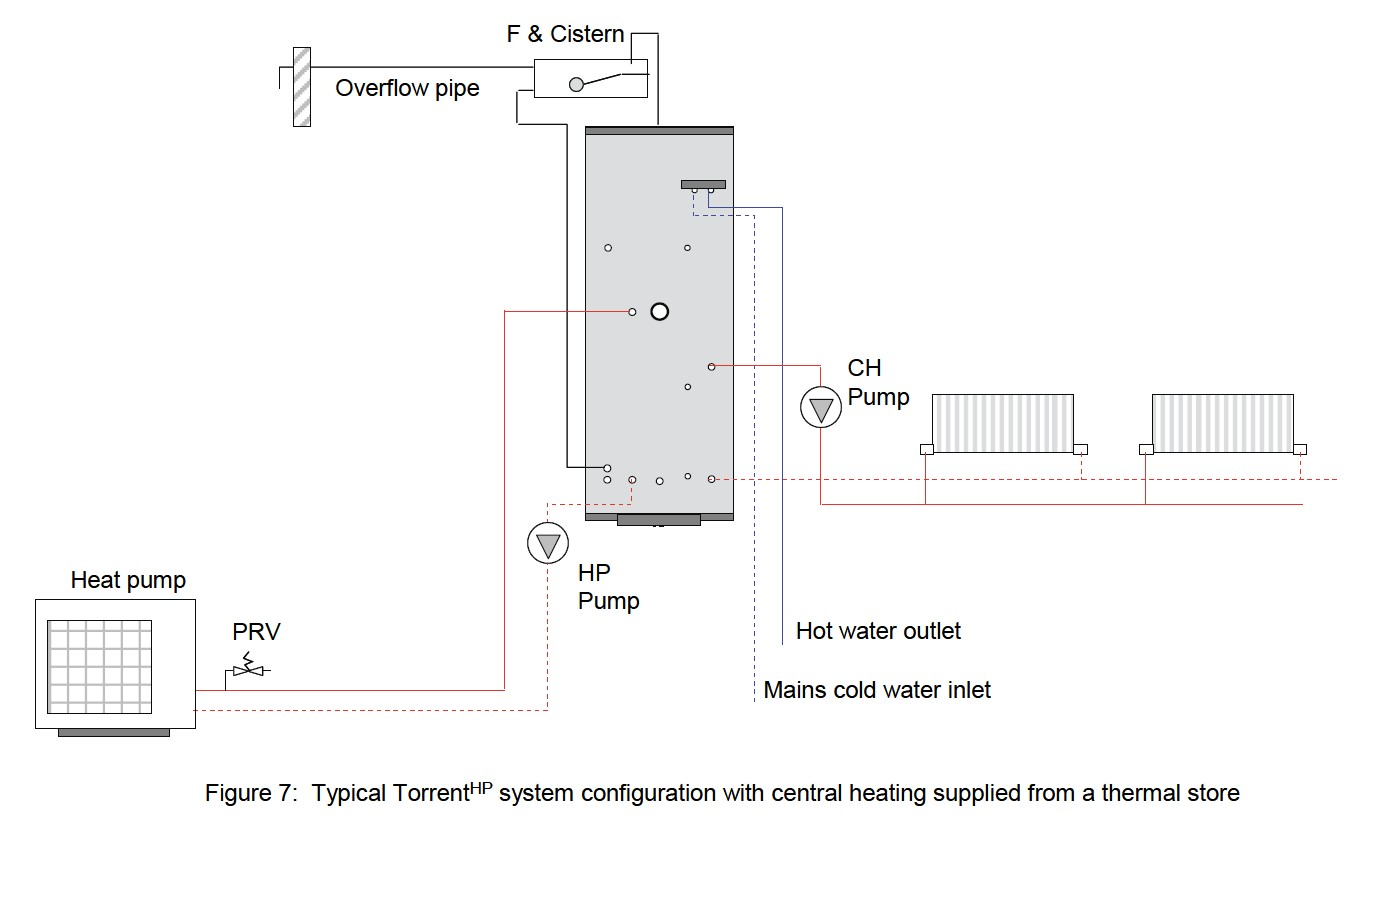 Typical TorrentHP system configuration with central heating supplied from a thermal store